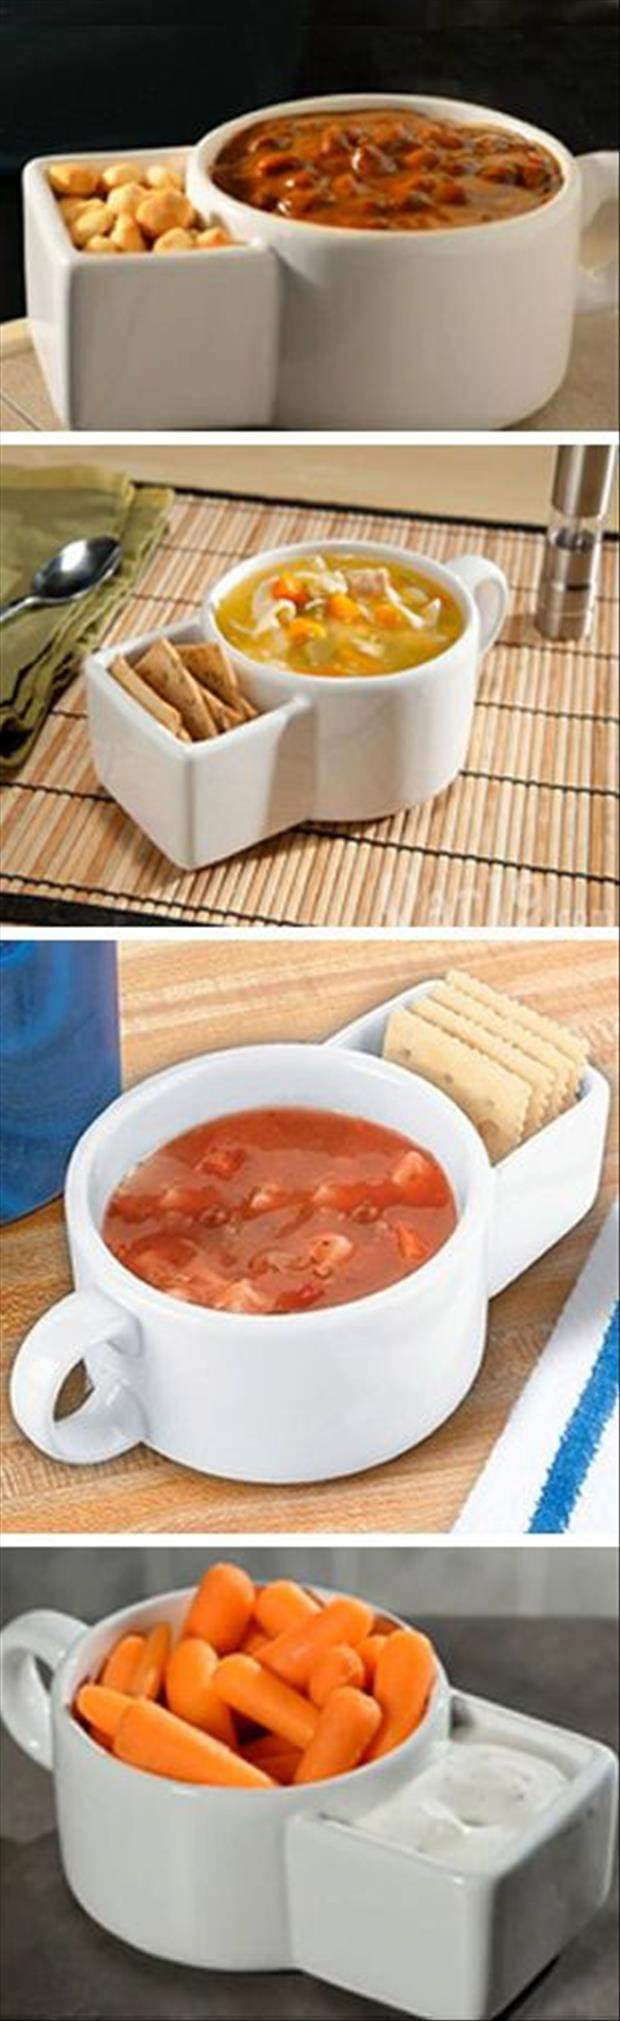 AD-soup-and-crackers